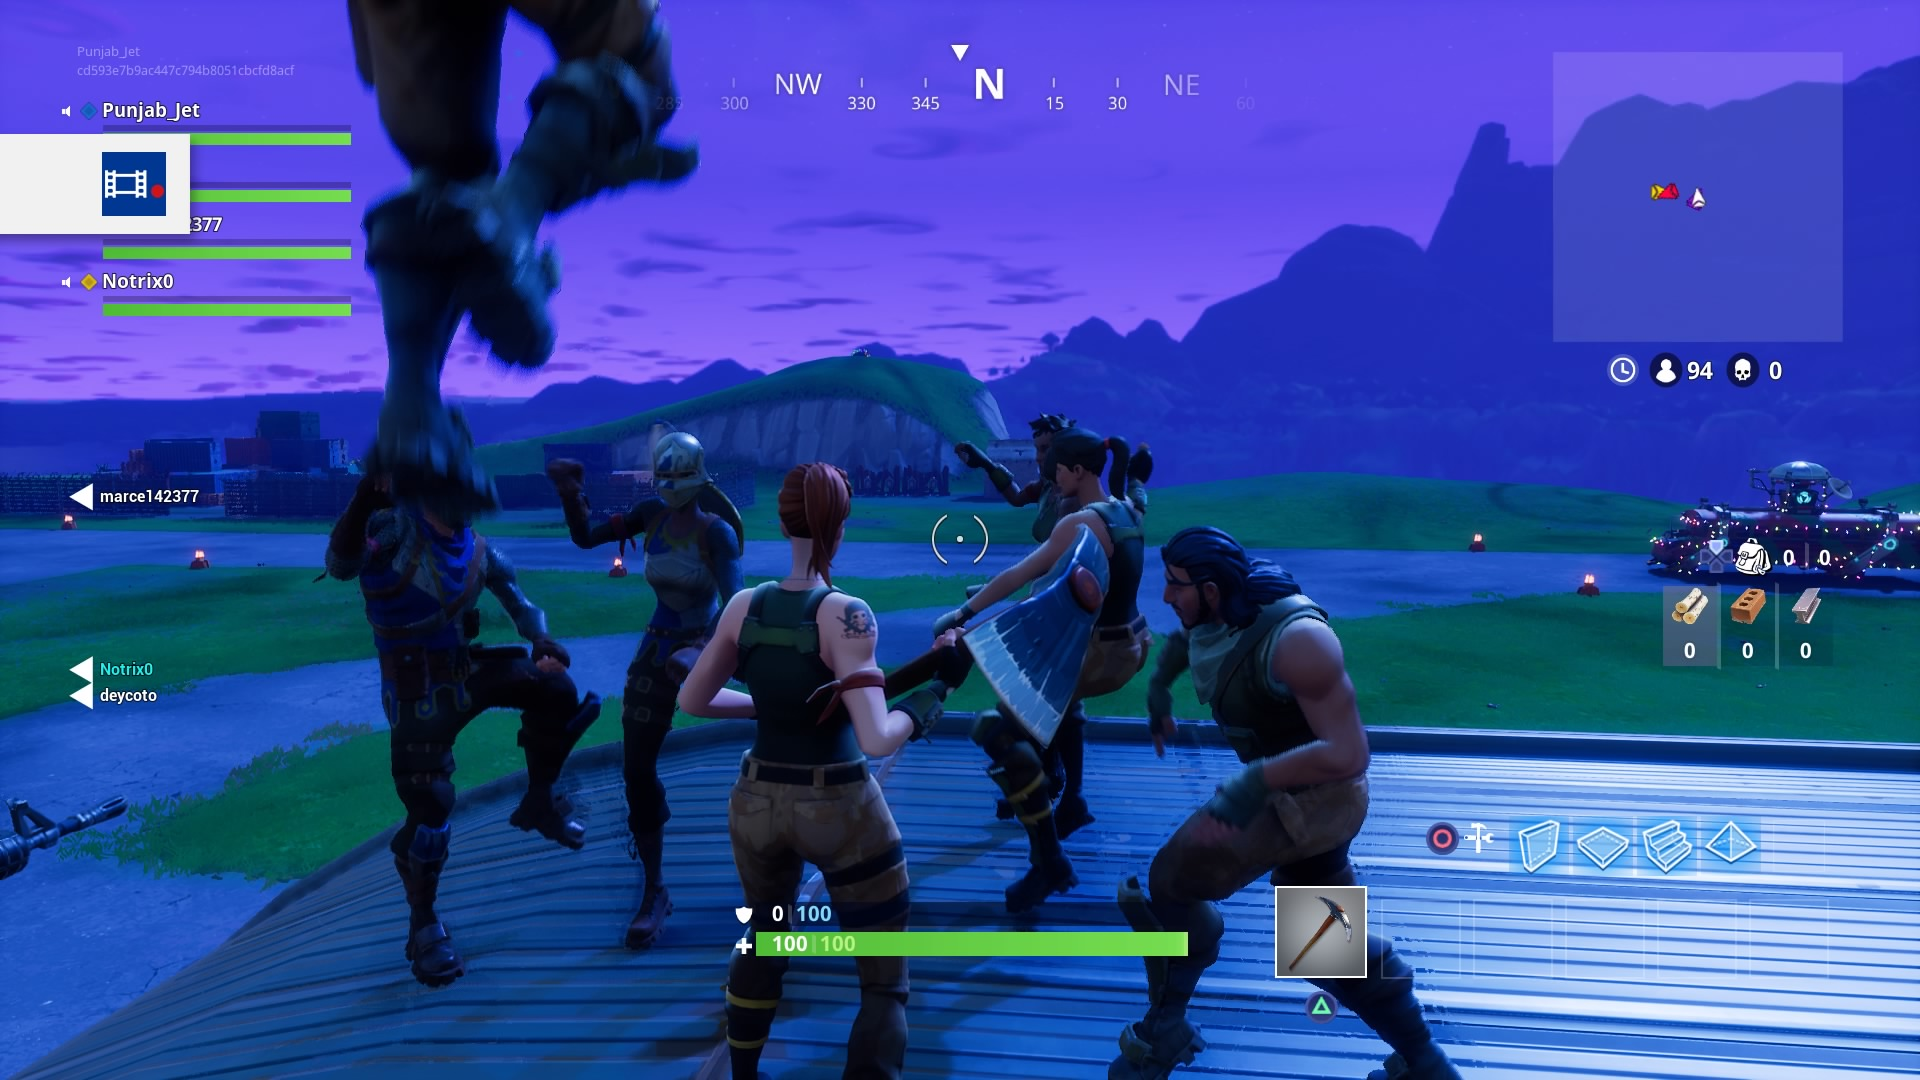 Fortnite Dance Party Wallpaper 63020 1920x1080 px 1920x1080